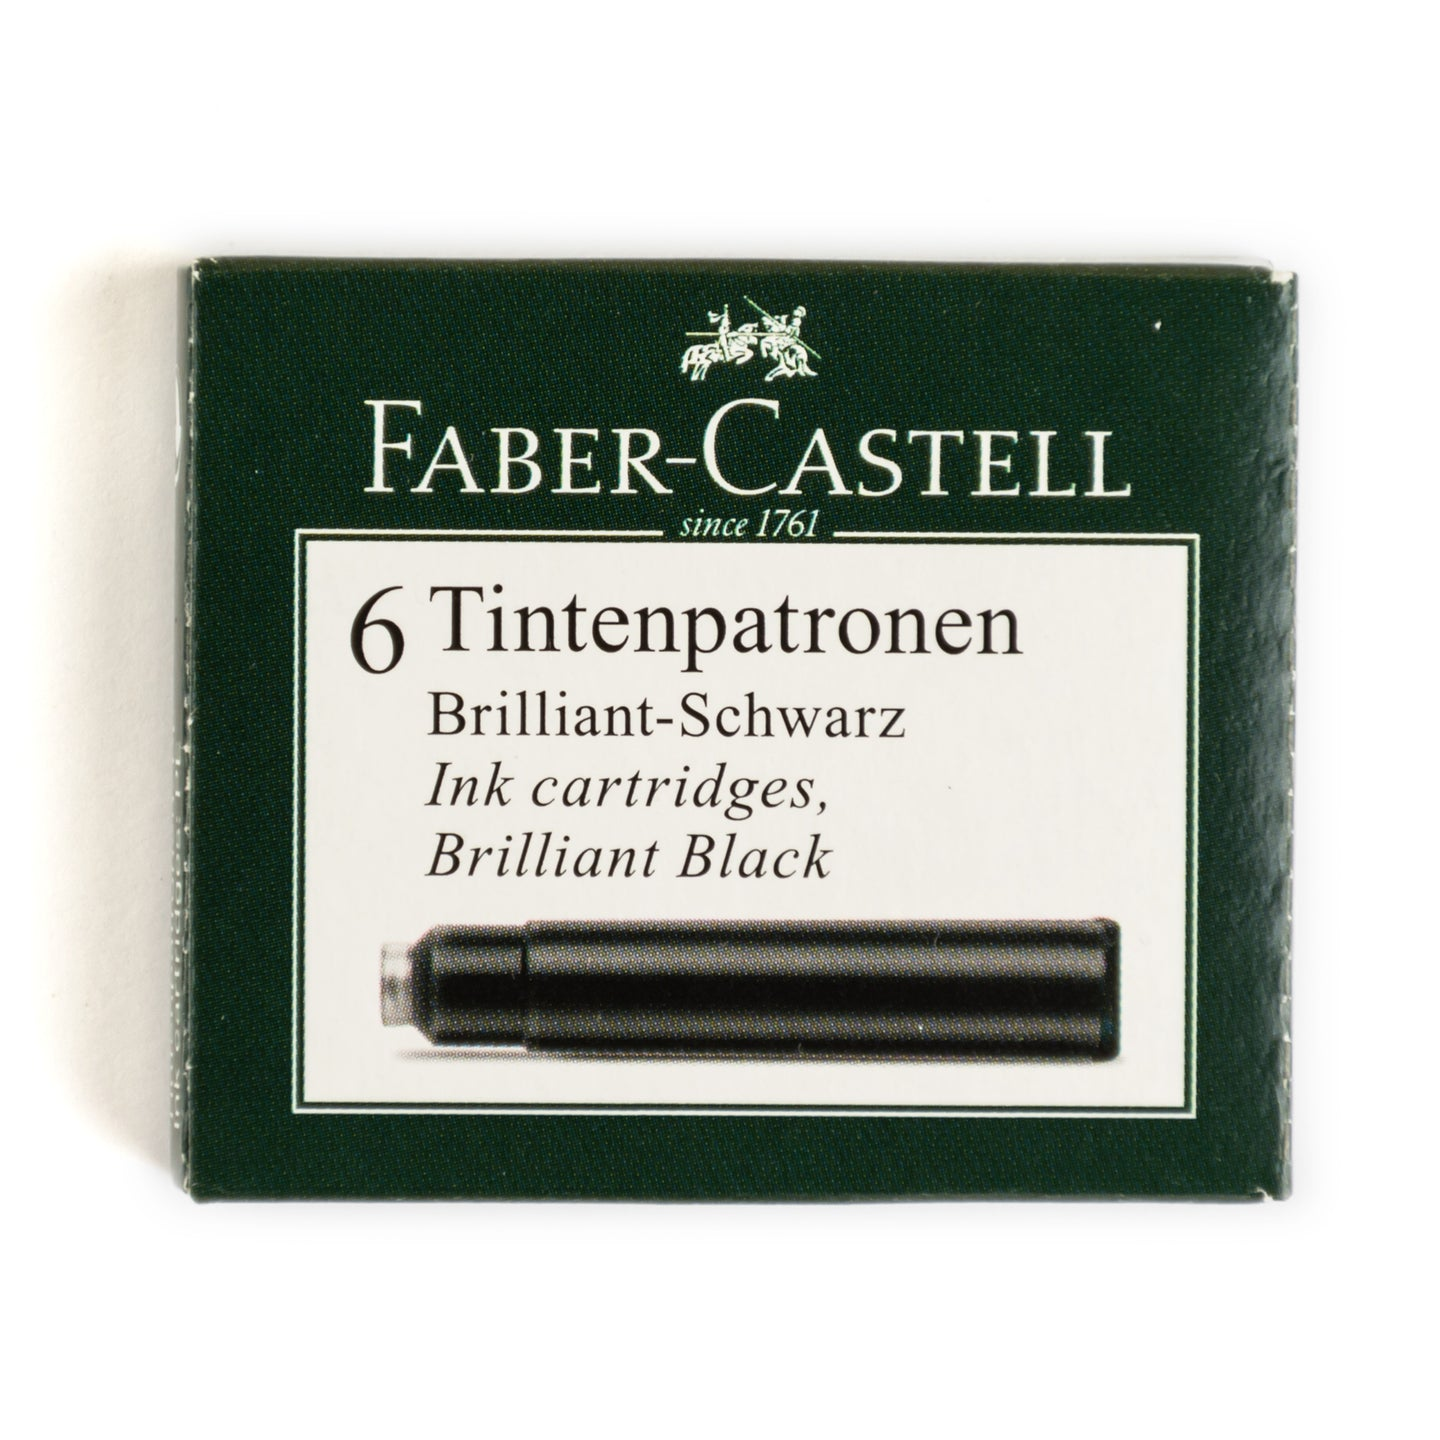 Faber-Castell Fountain Pen Ink - Black - 6 Cartridges-Fountain Pens Online